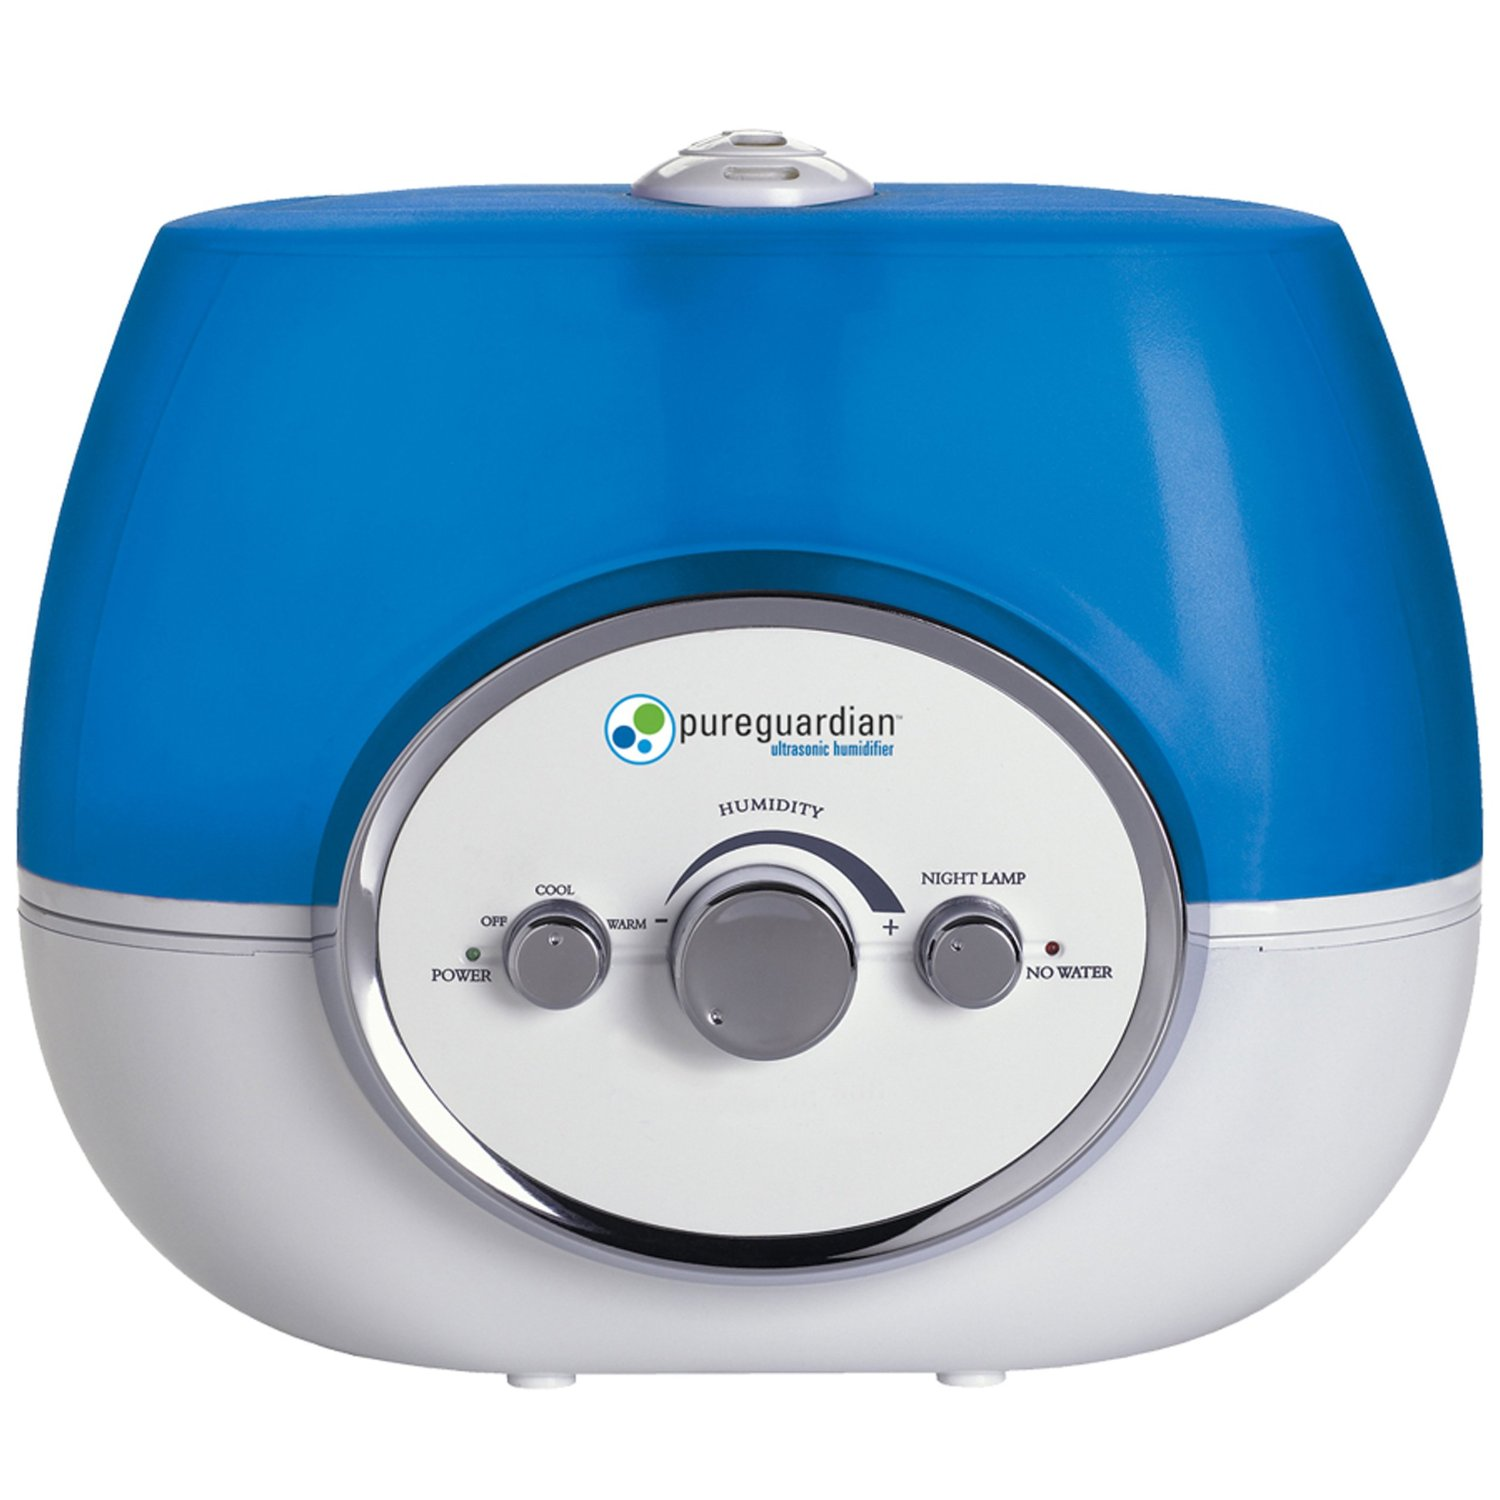 pureguardian humidifier review PureGuardian H1510 100 Hour Warm or  #025F9B